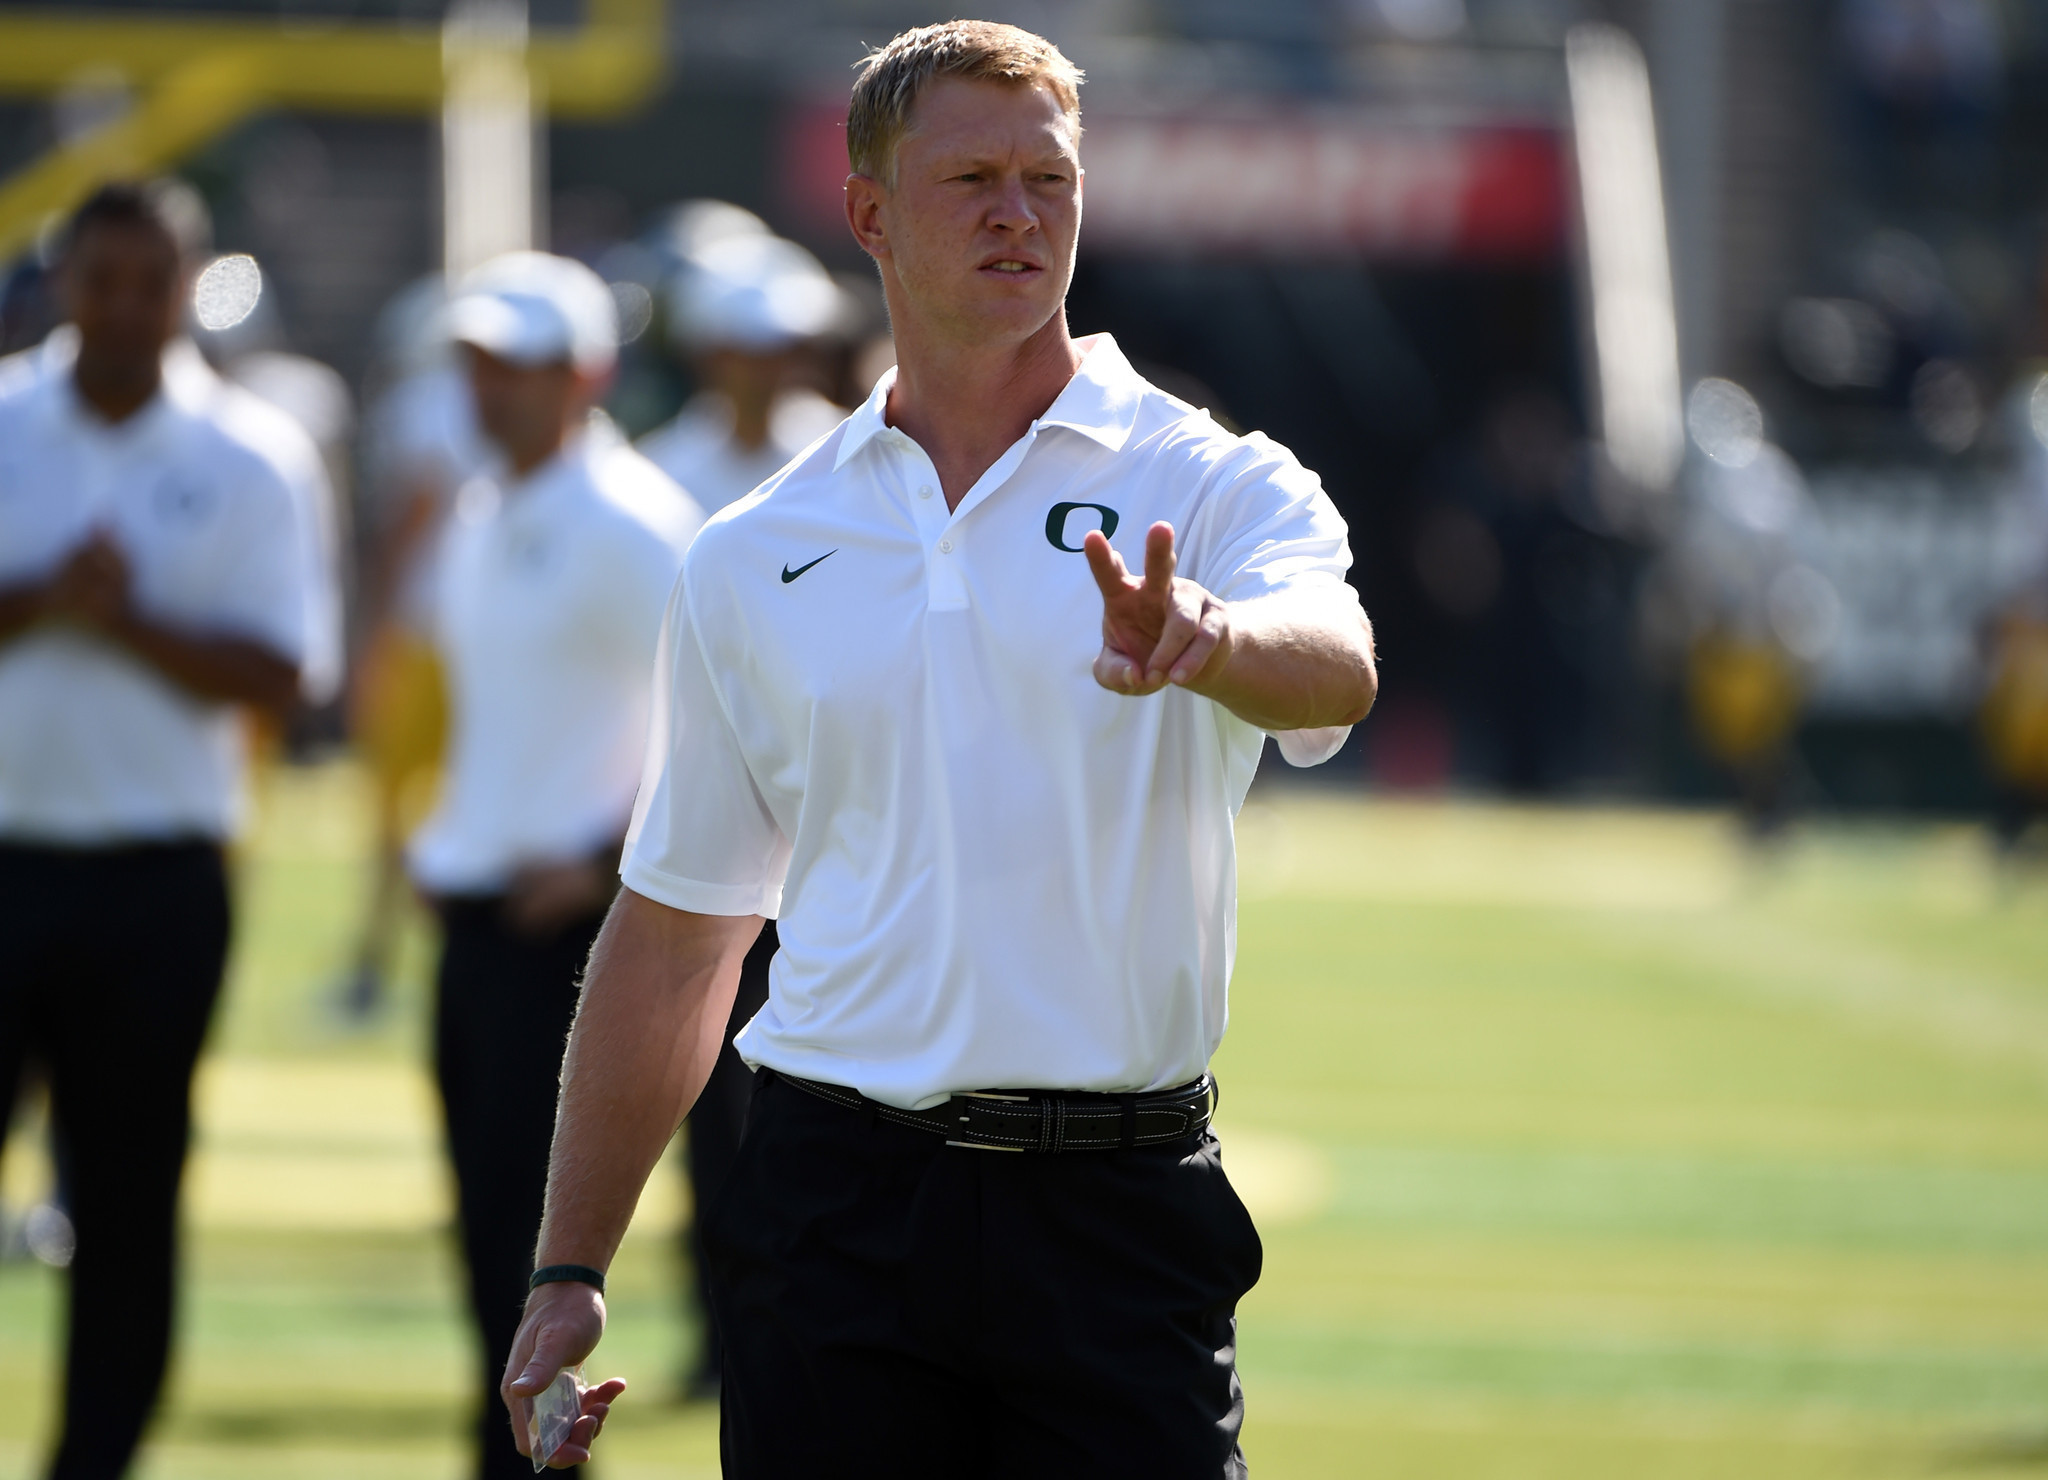 Ucf Football Scott Frost >> New UCF coach Scott Frost to be paid $1.7 million under five-year agreement - Orlando Sentinel